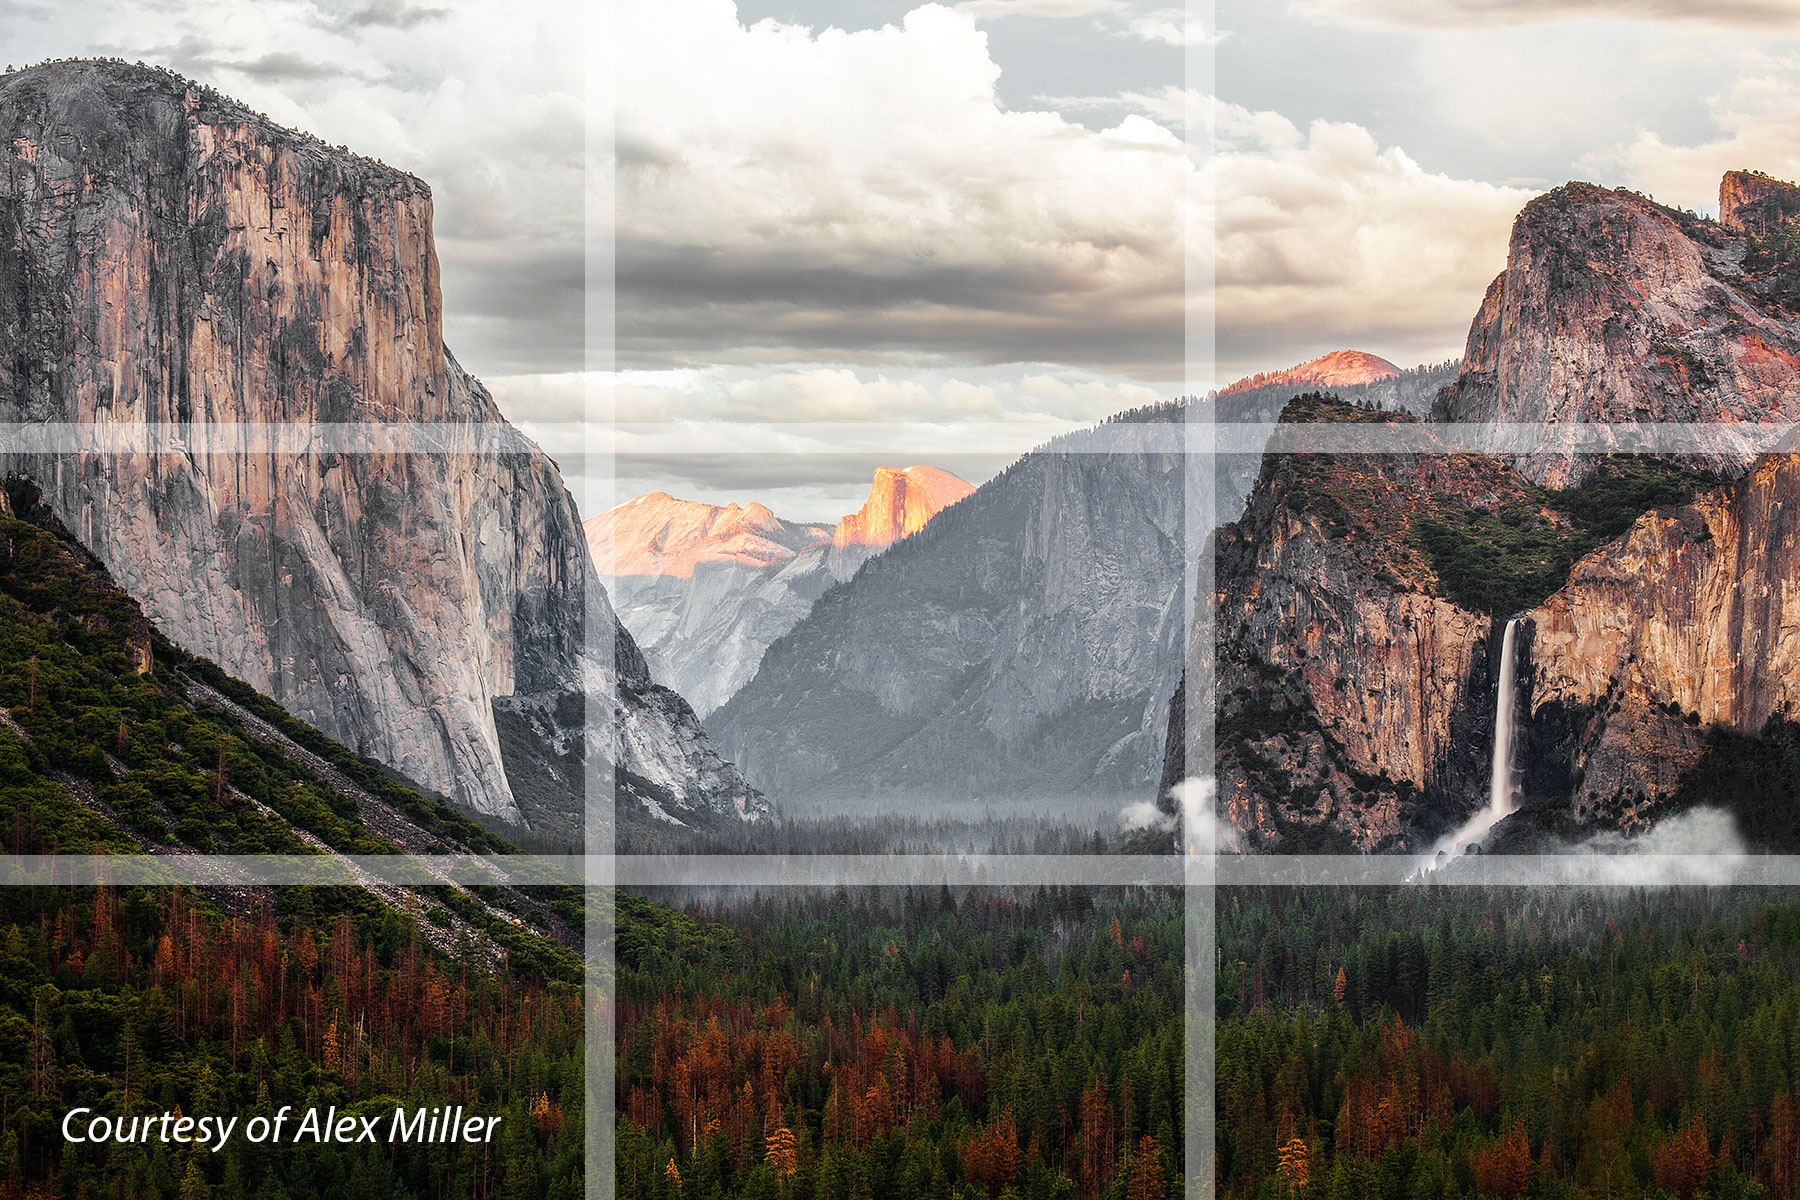 Alex-Miller-Rule-Of-Thirds composition example